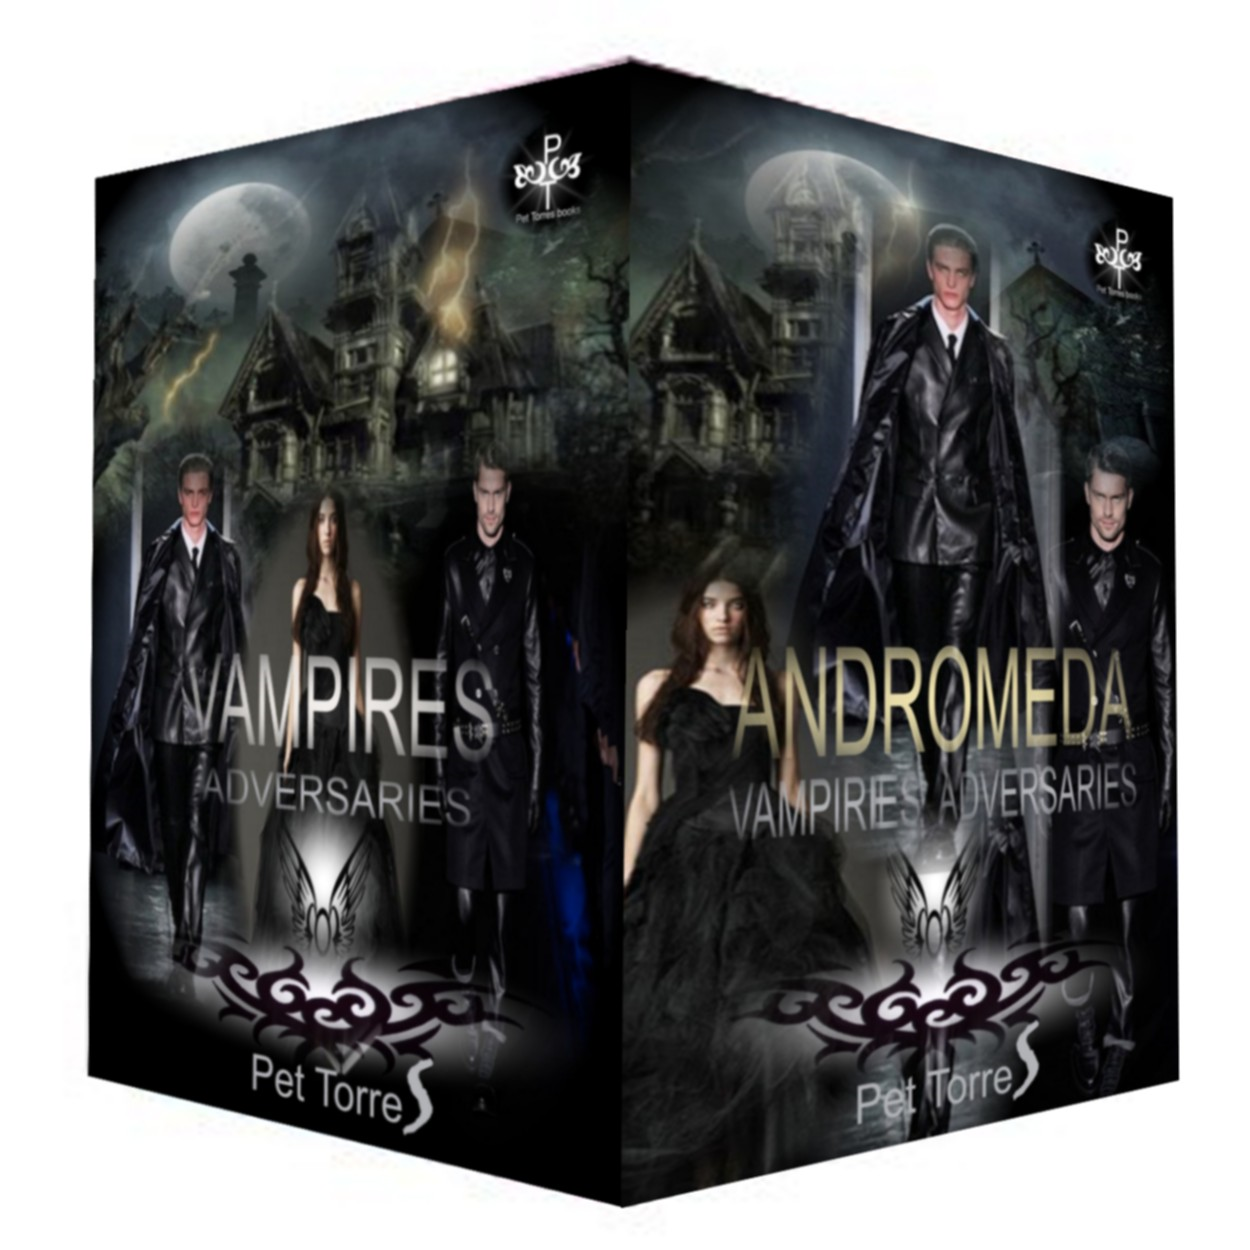 Box Set : Vampires adversaries series ( 2 novels )